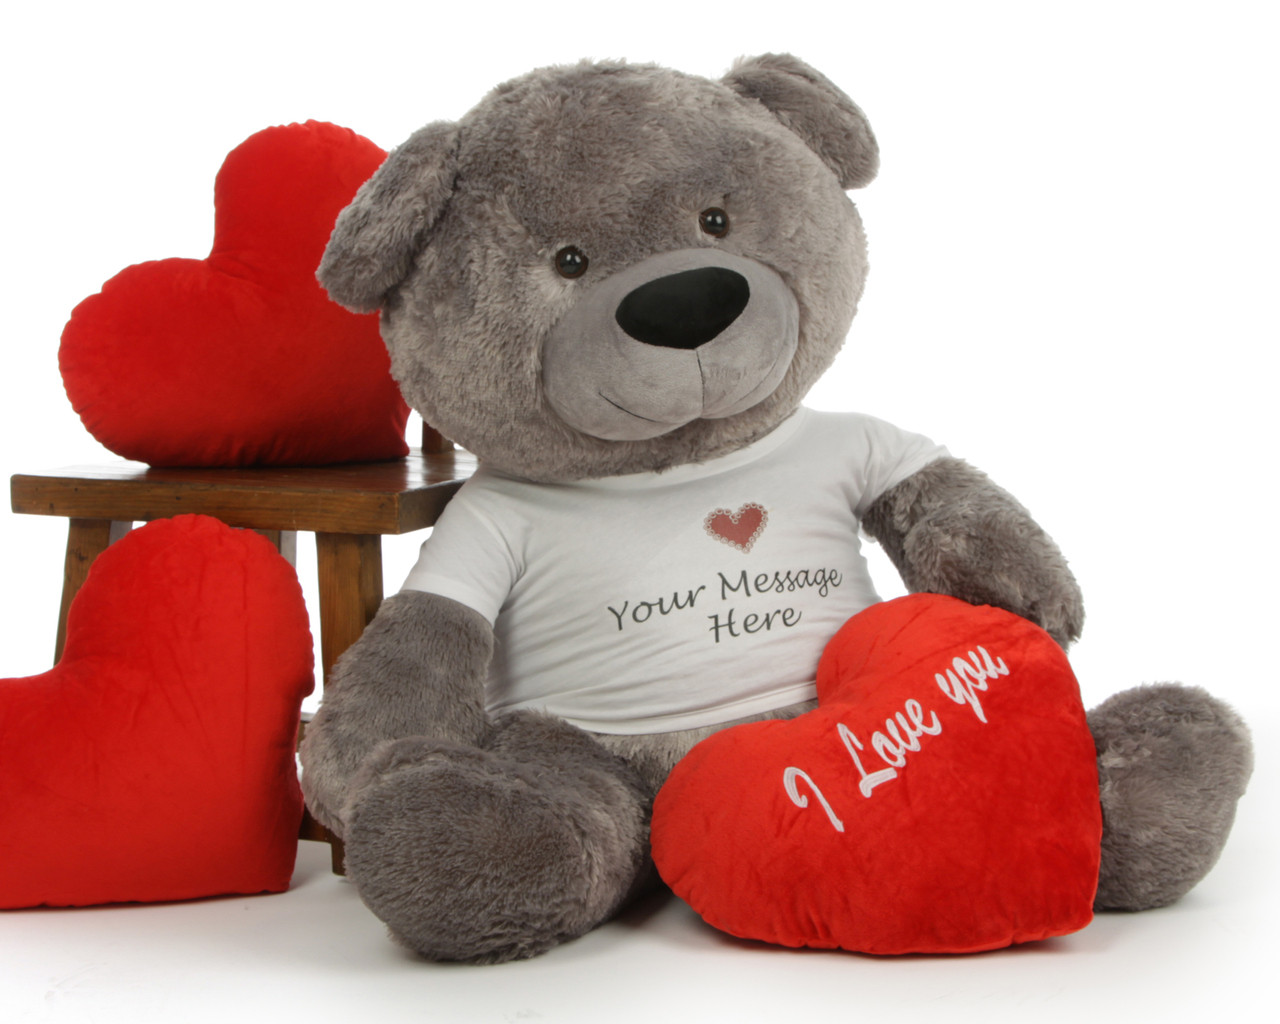 diamond shags personalized valentines day teddy bear with i love you heart pillow - Valentine Day Bears